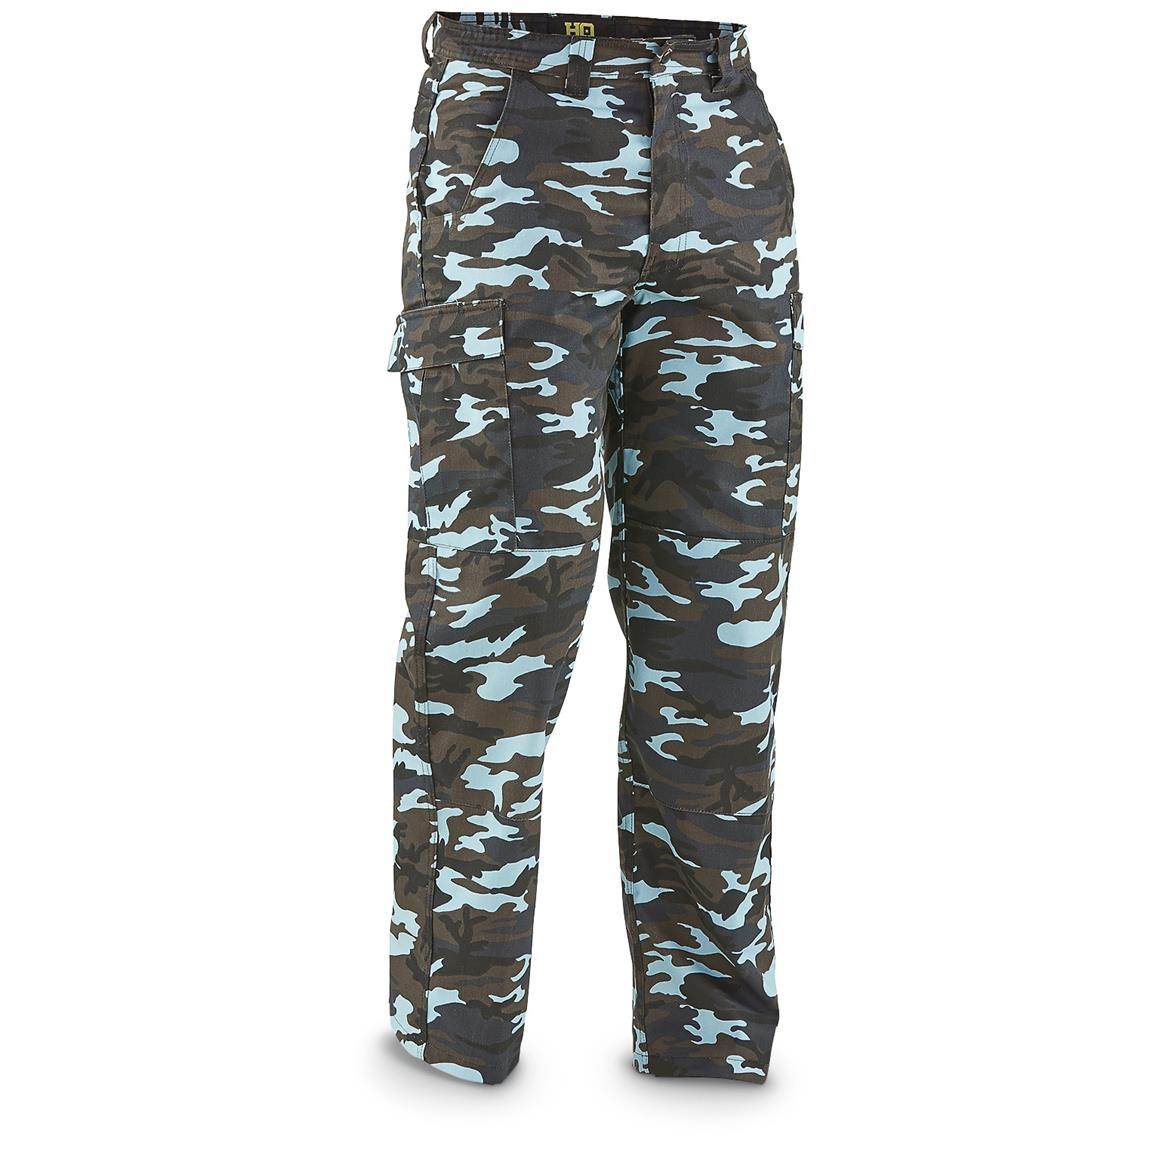 HQ ISSUE BDU Style Tactical Cargo Pants